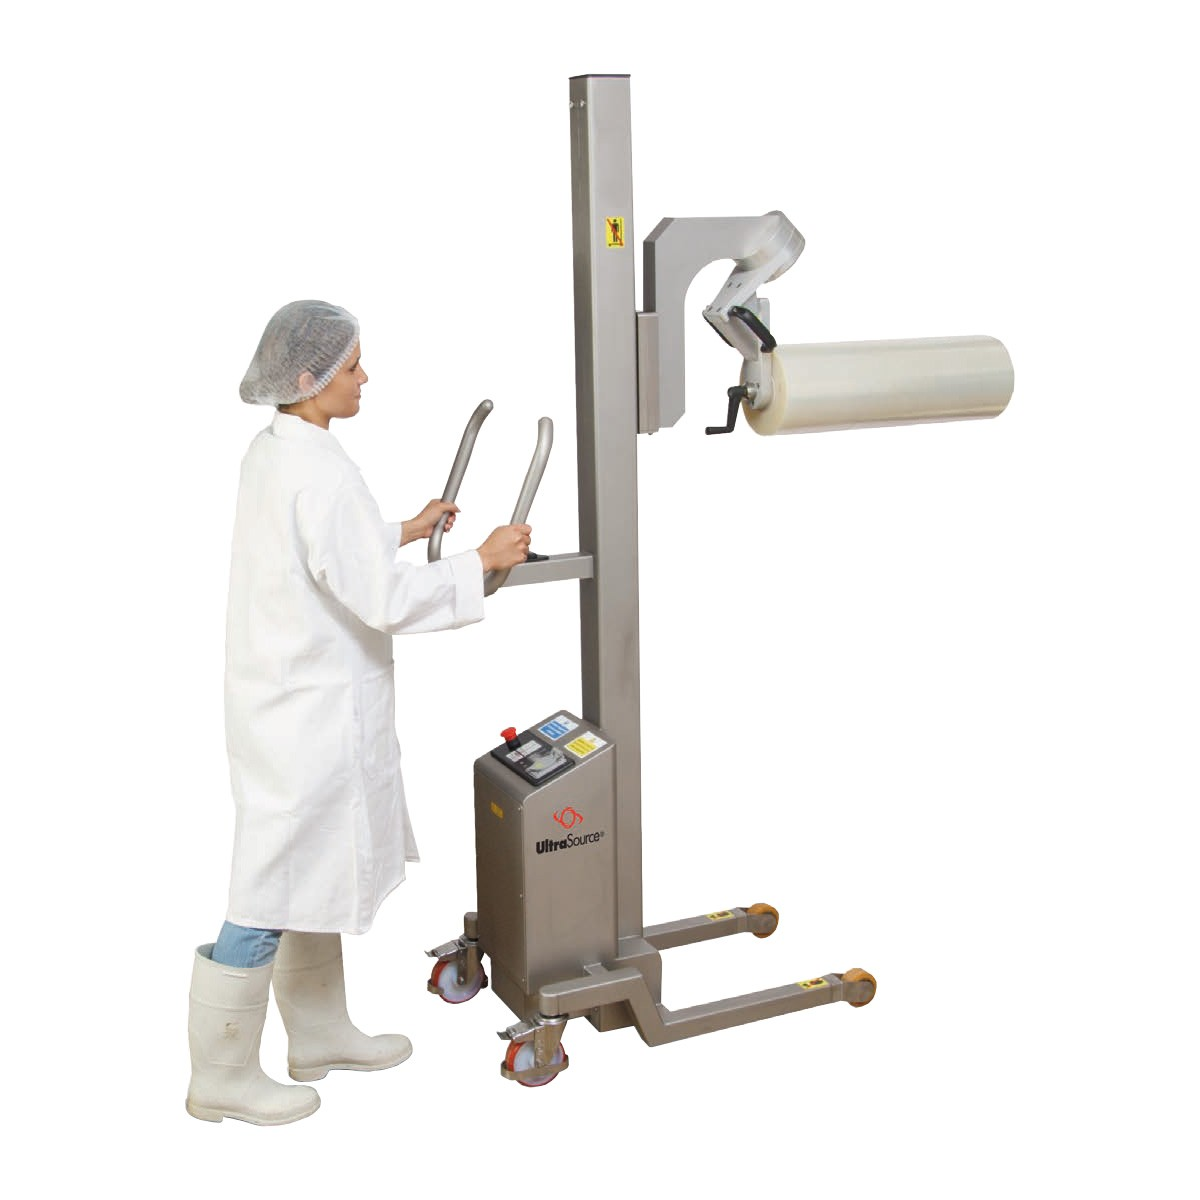 EZ Lift Rollstock Film Hoist / Paper Roll Handling With